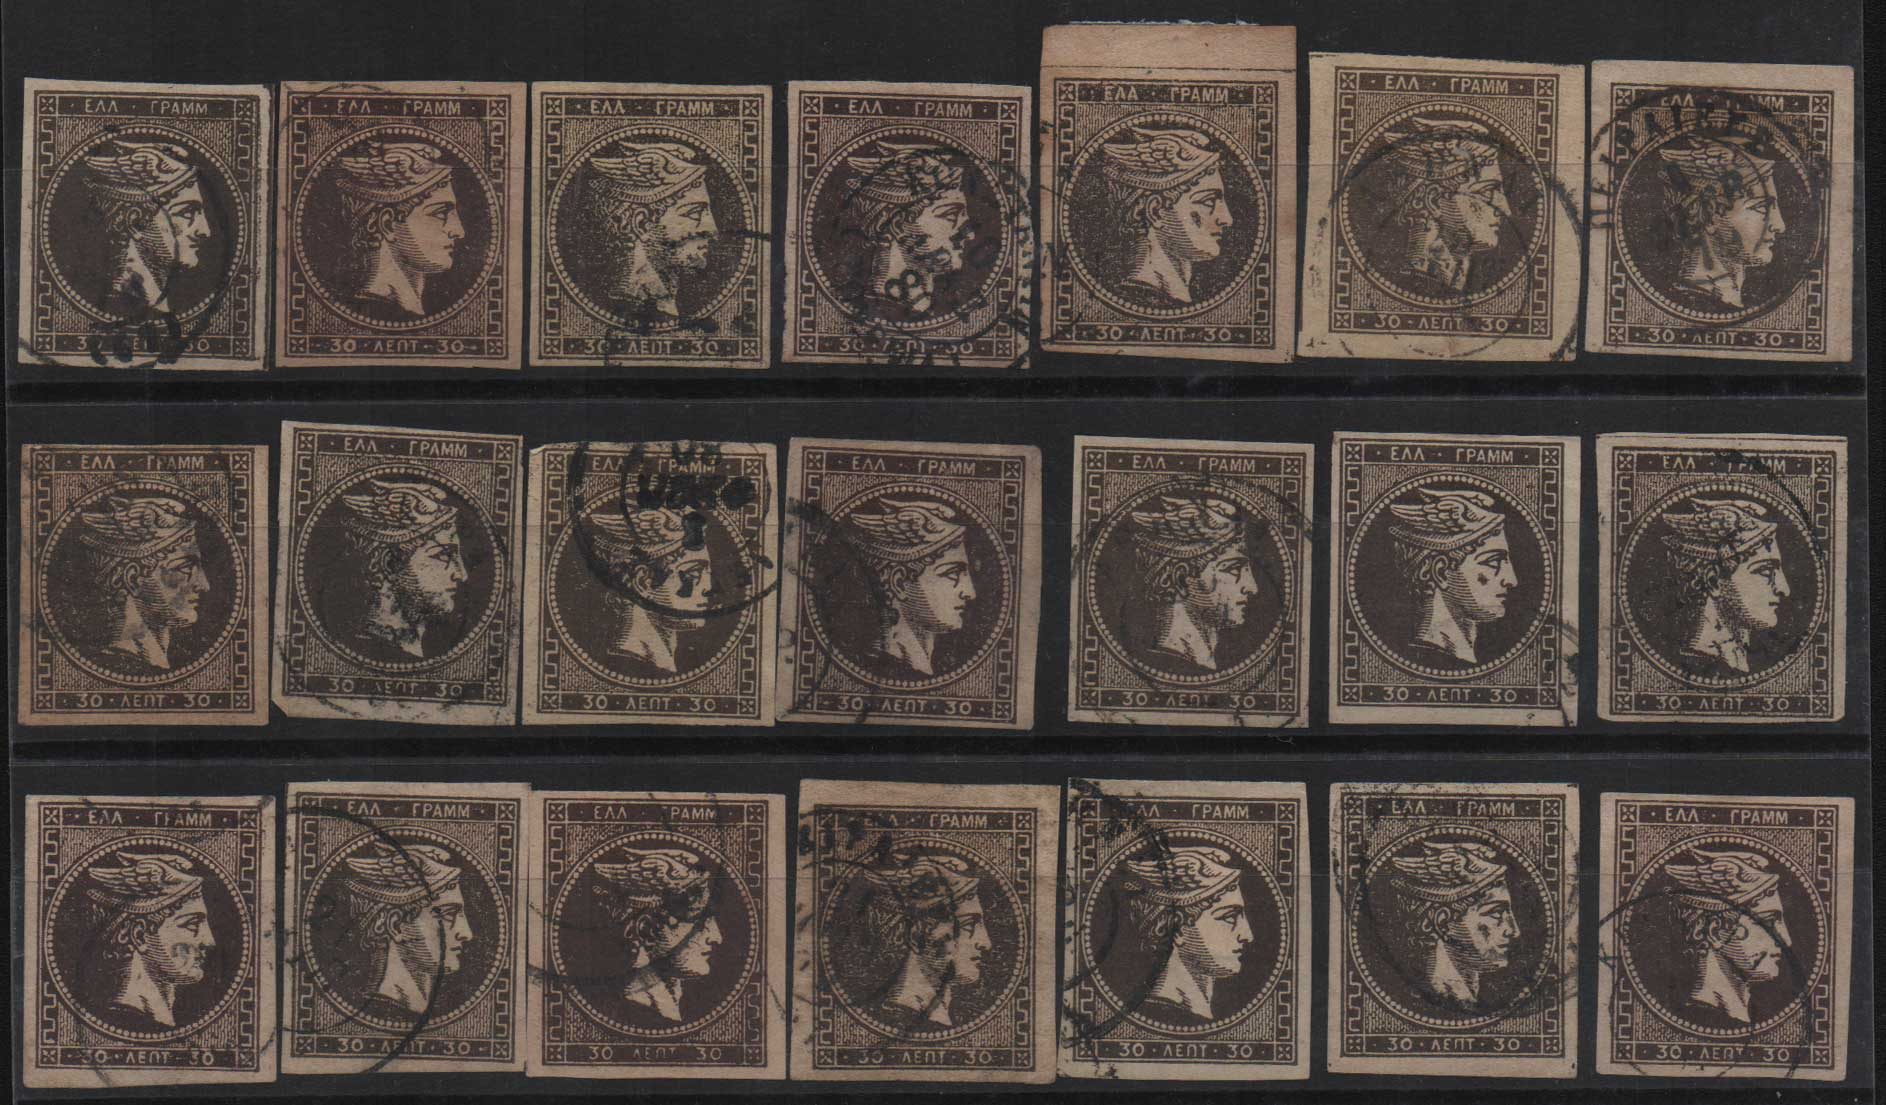 Lot 32 - -  LARGE HERMES HEAD large hermes head -  Athens Auctions Public Auction 74 General Stamp Sale